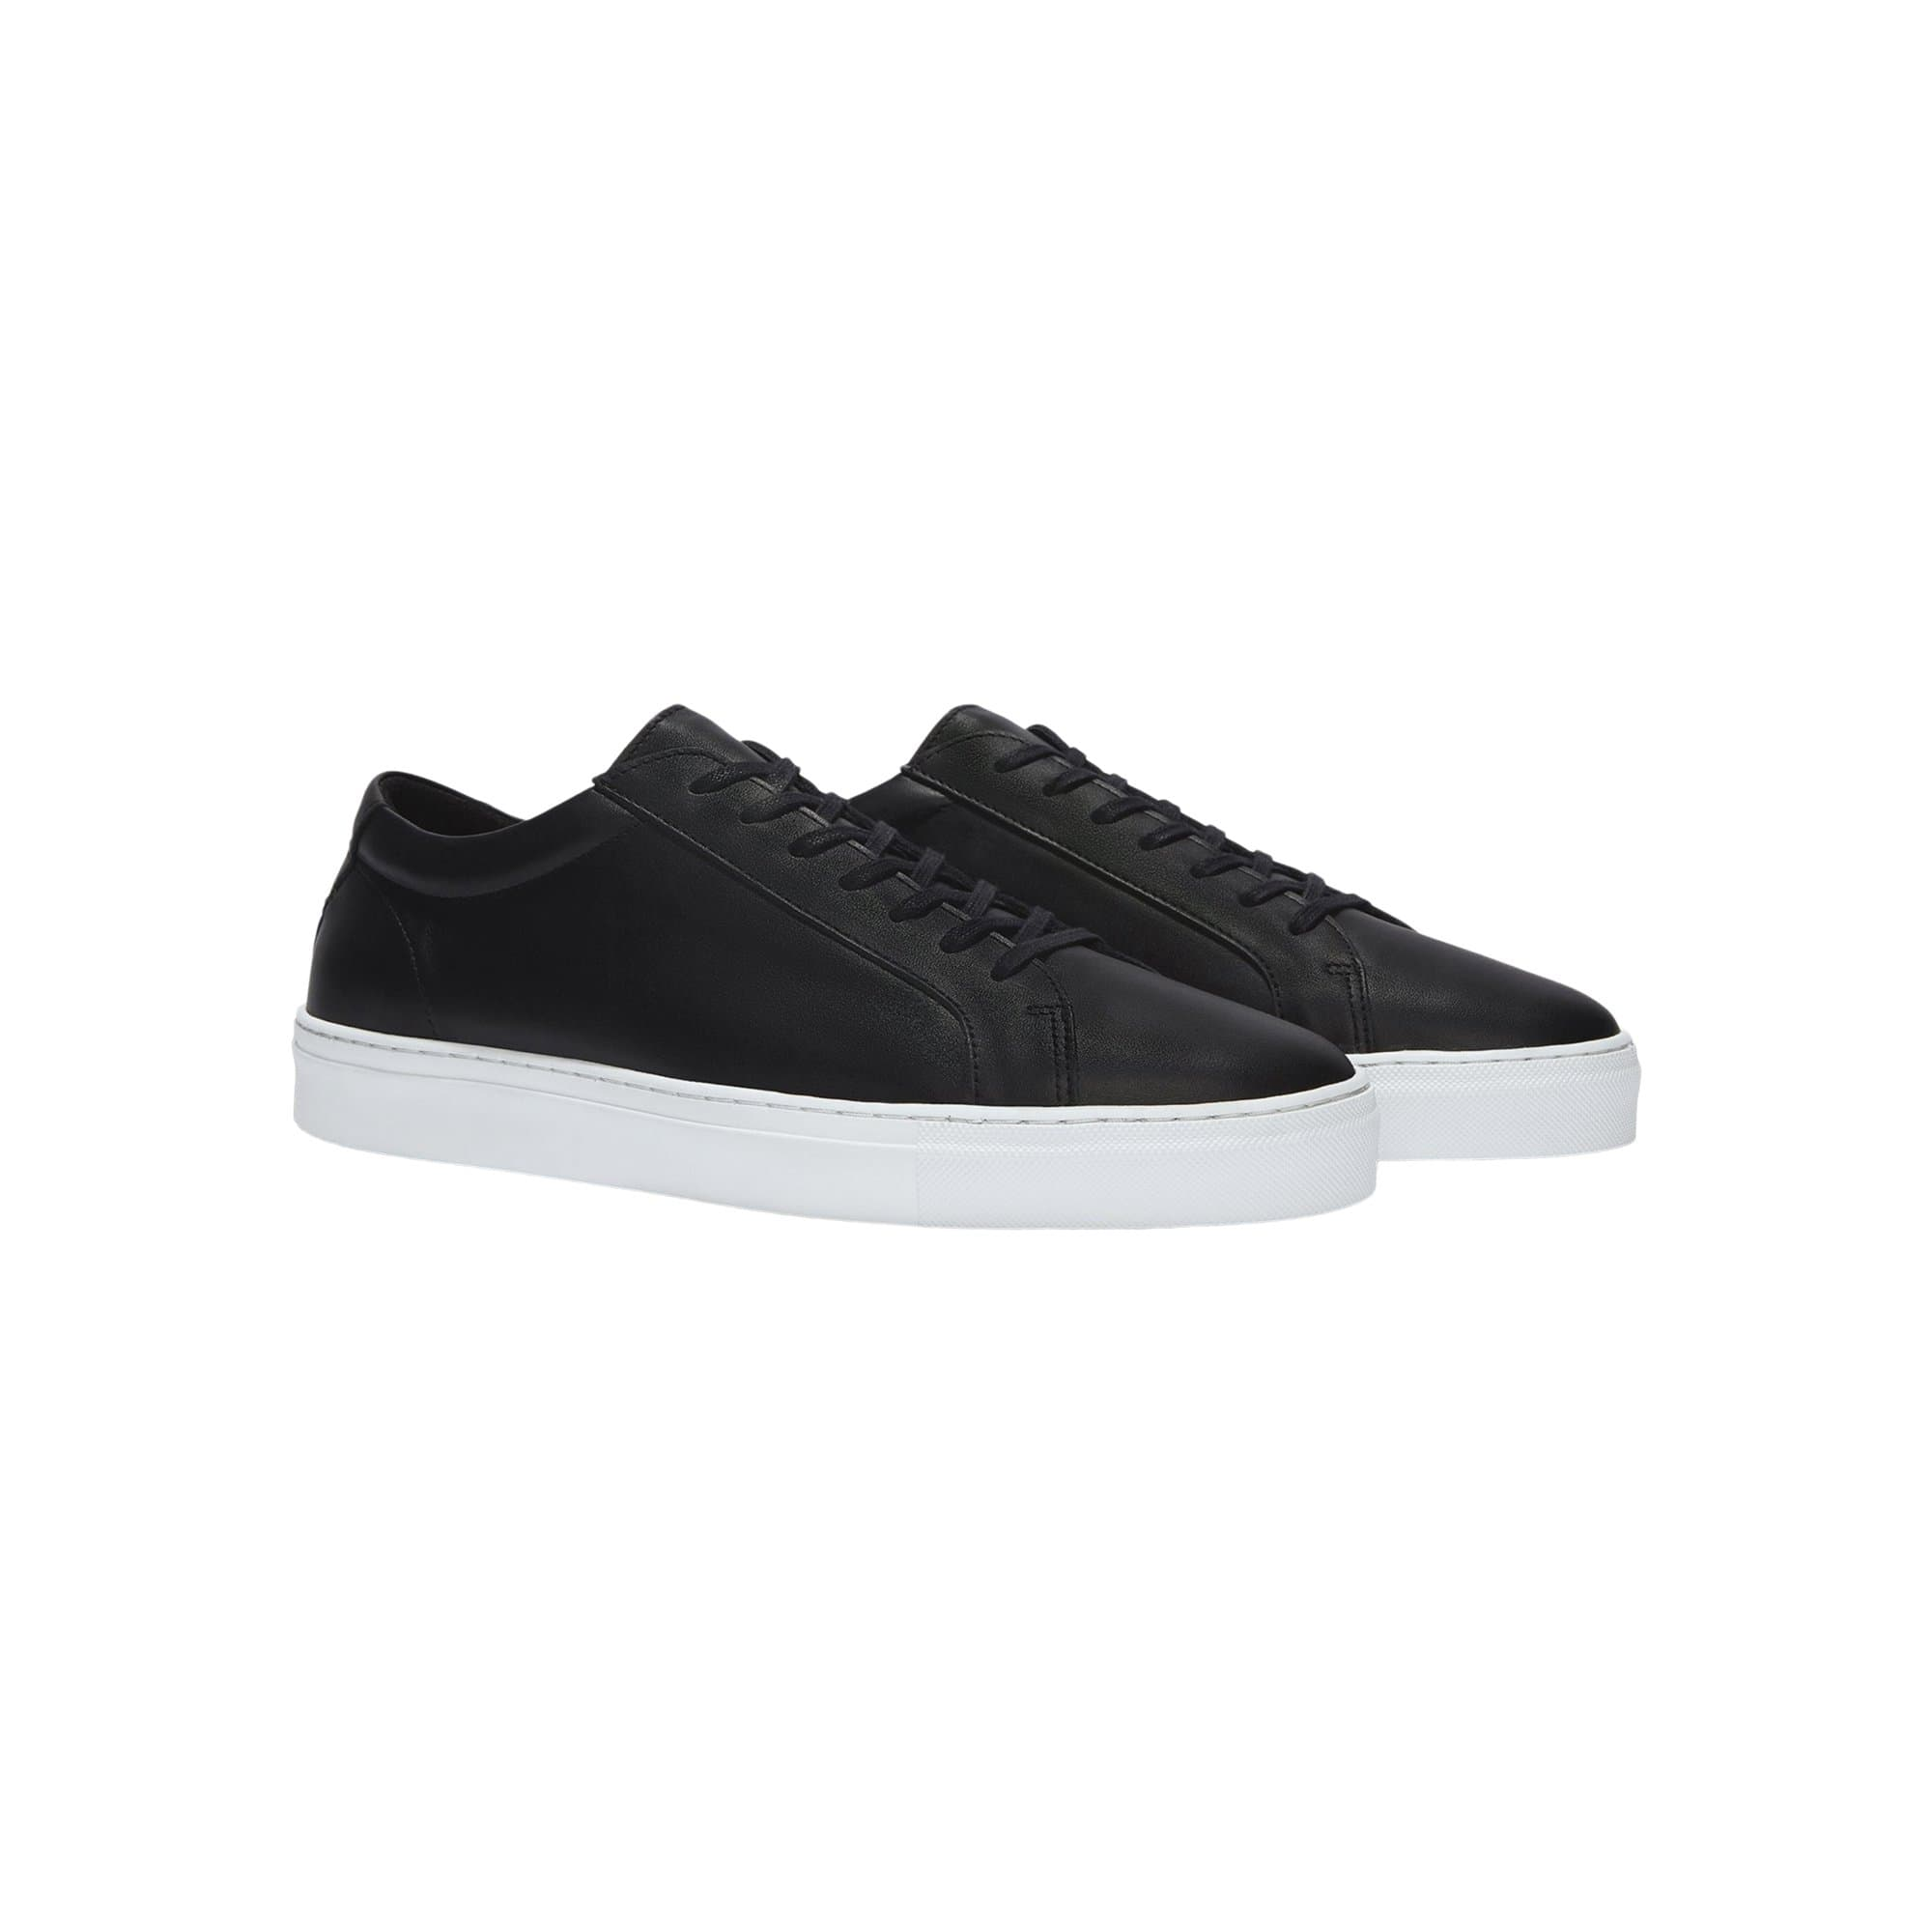 Series 1 Double Black Leather Sneaker